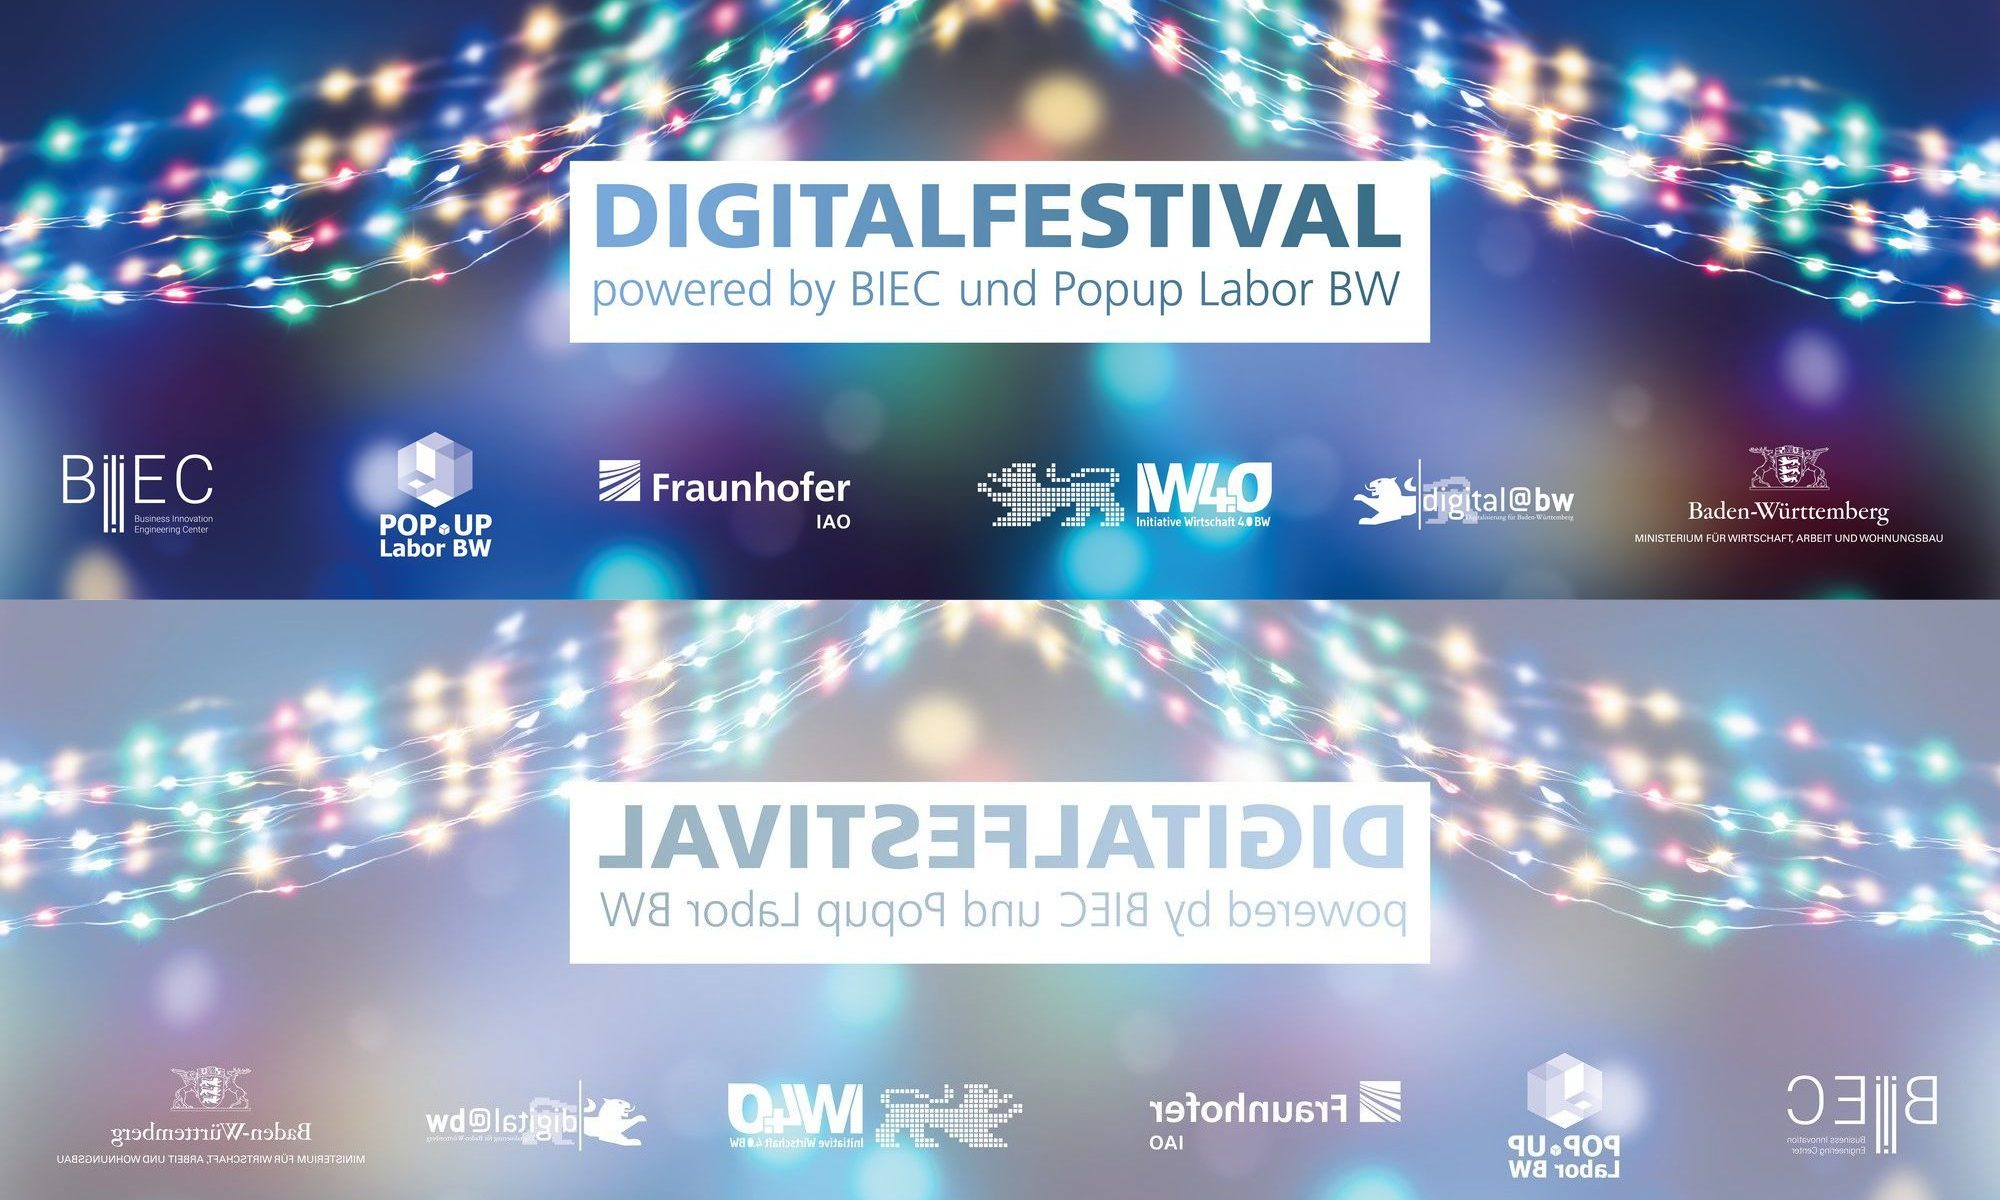 Digitalfestival – powered by BIEC und Popup Labor BW